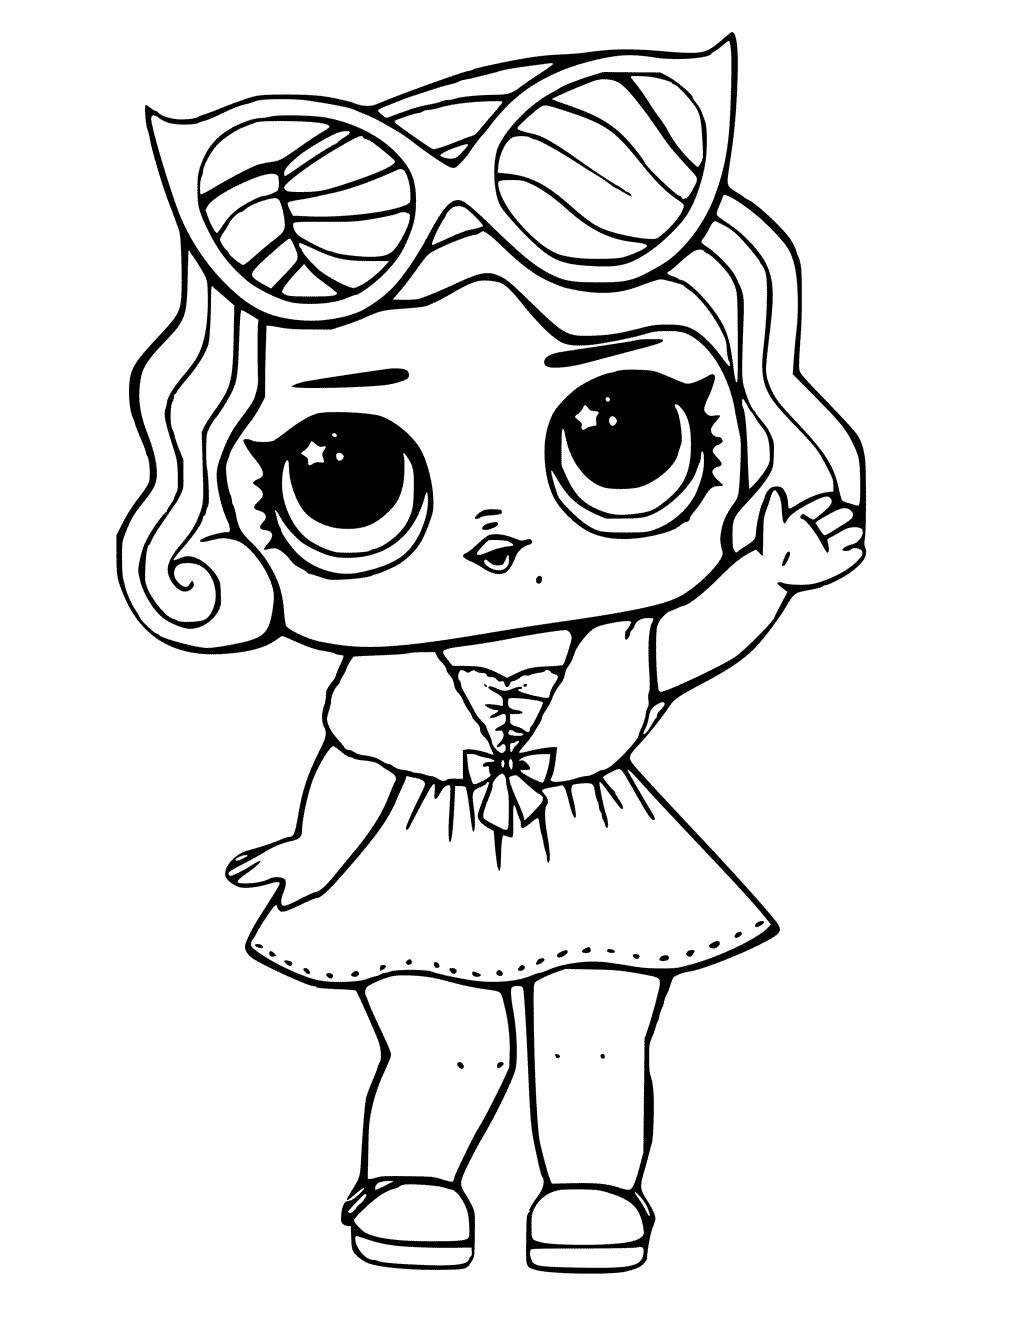 coloring images lol lol dolls coloring pages best coloring pages for kids lol images coloring